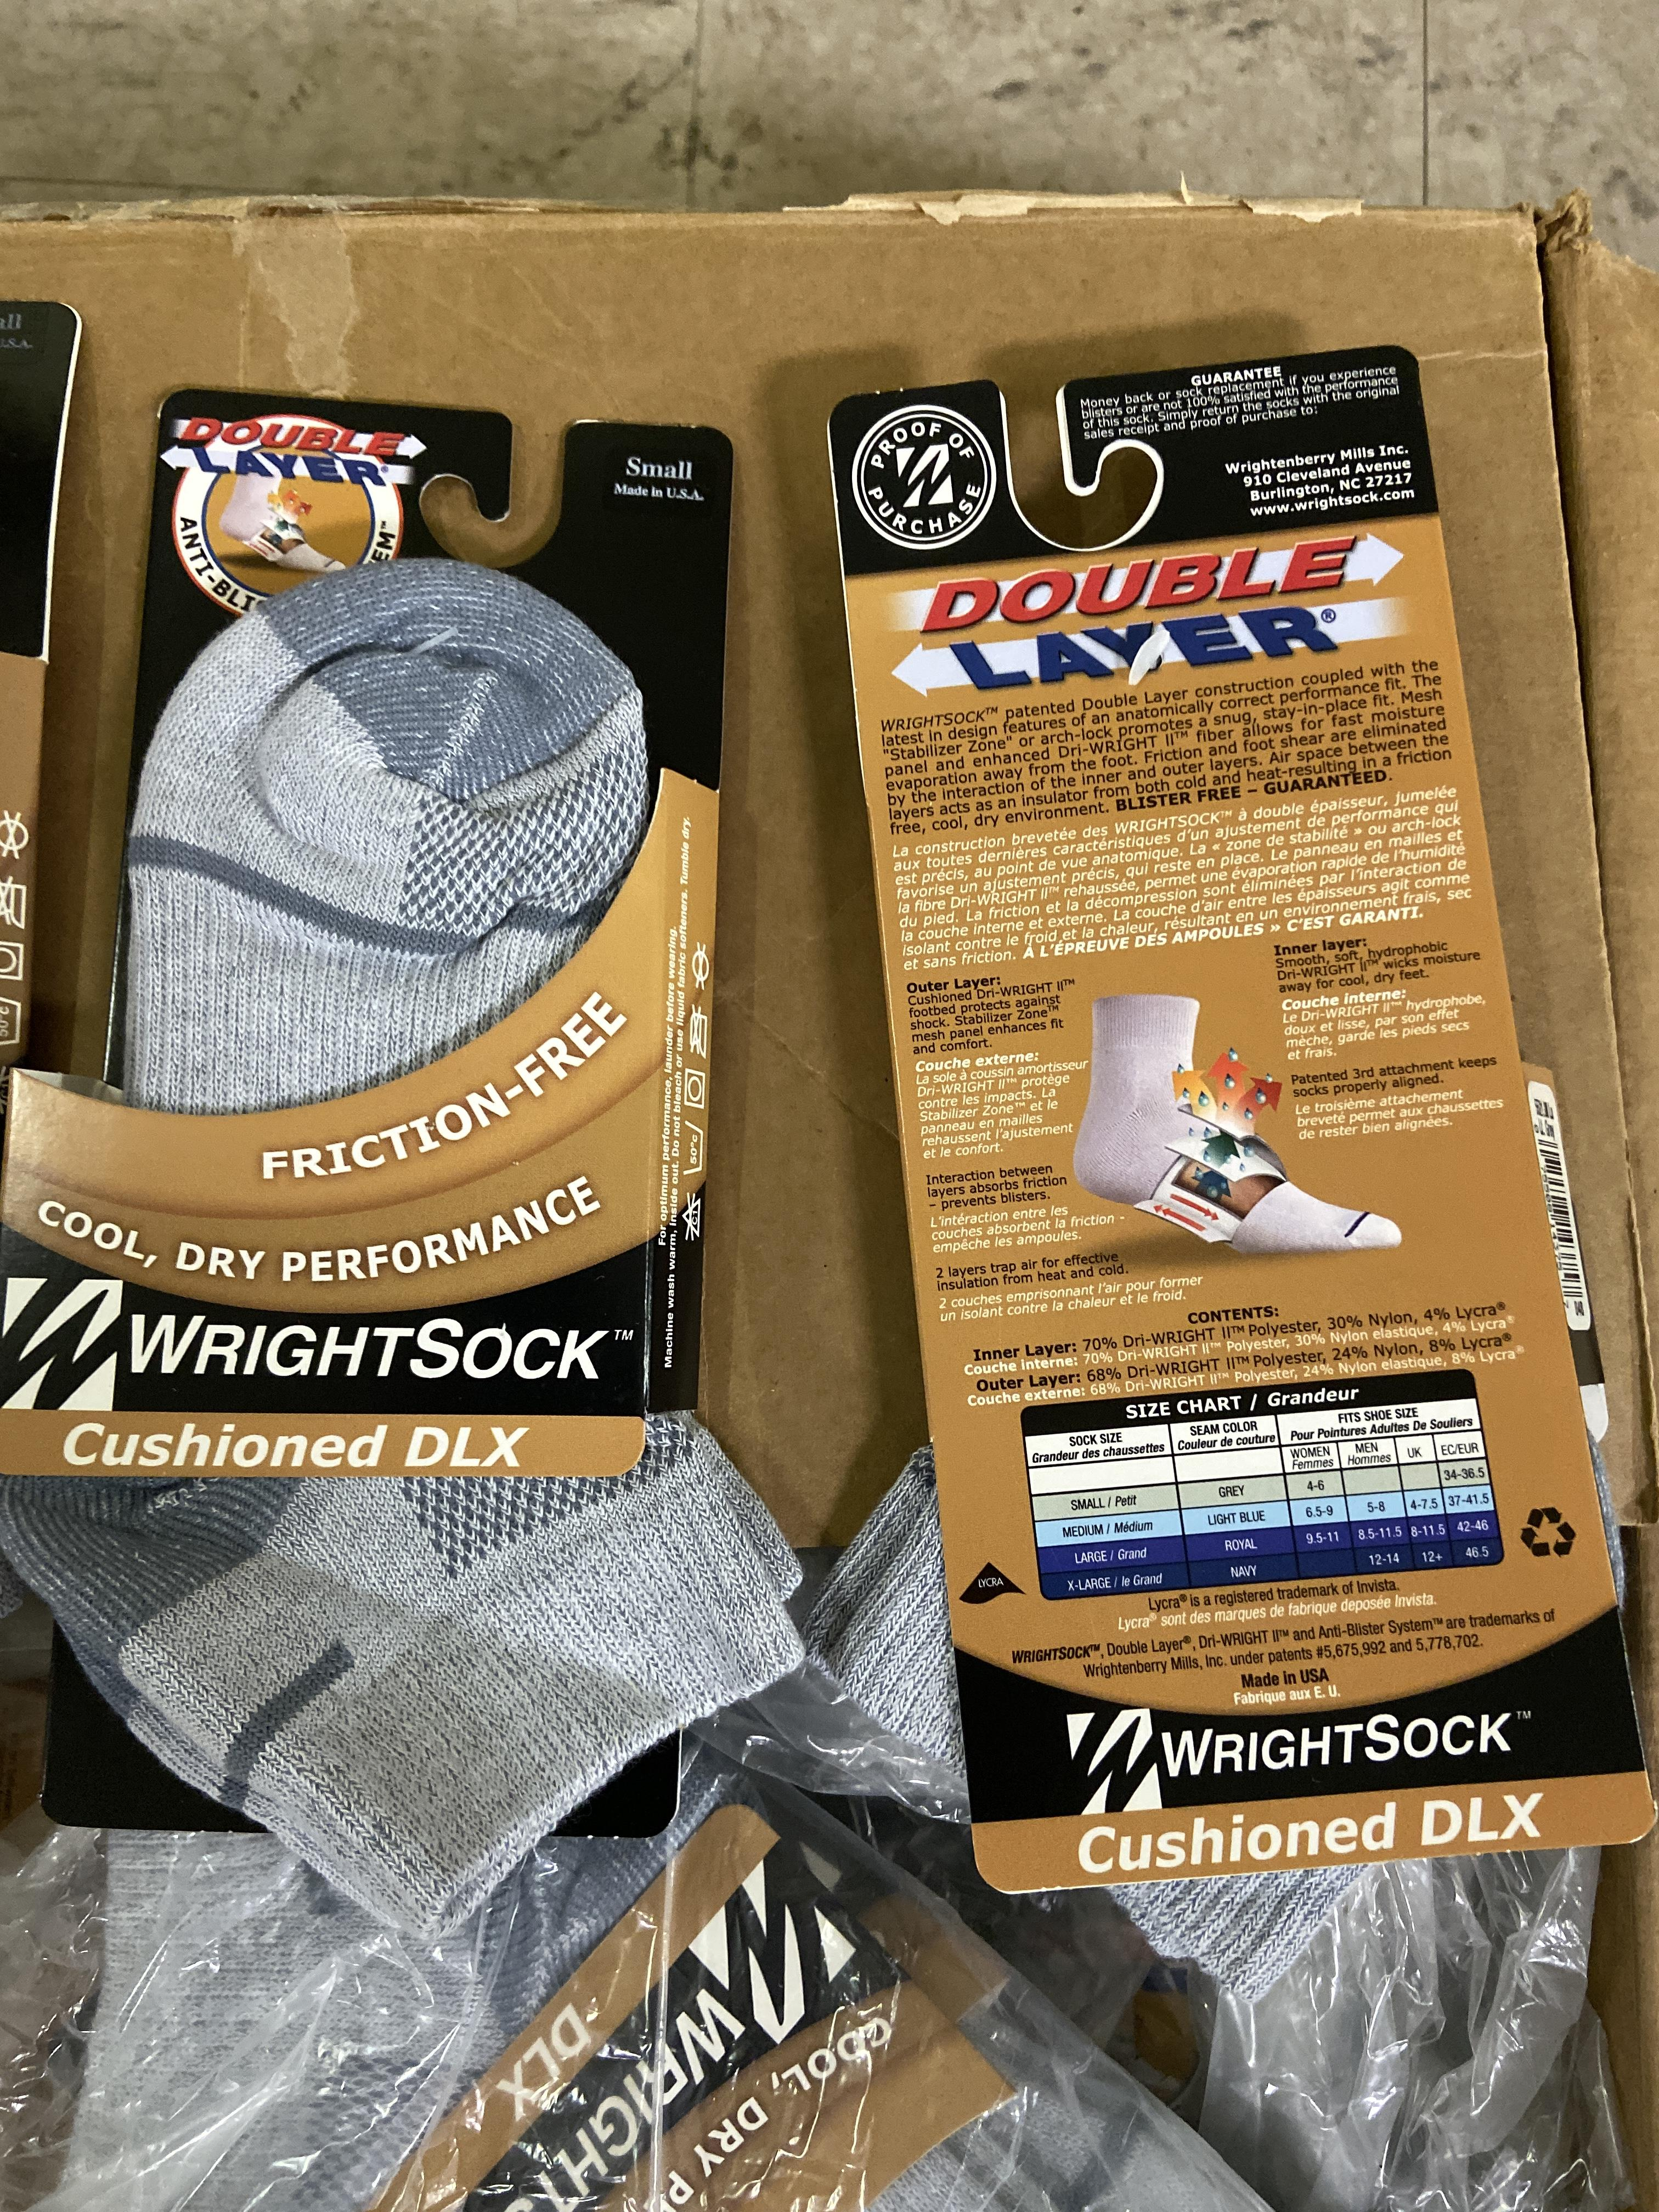 Lot 29 - 250+ packs of New Socks, Wrightsocks Cushioned DLX, Double Layer, Gray Lot includes approximately